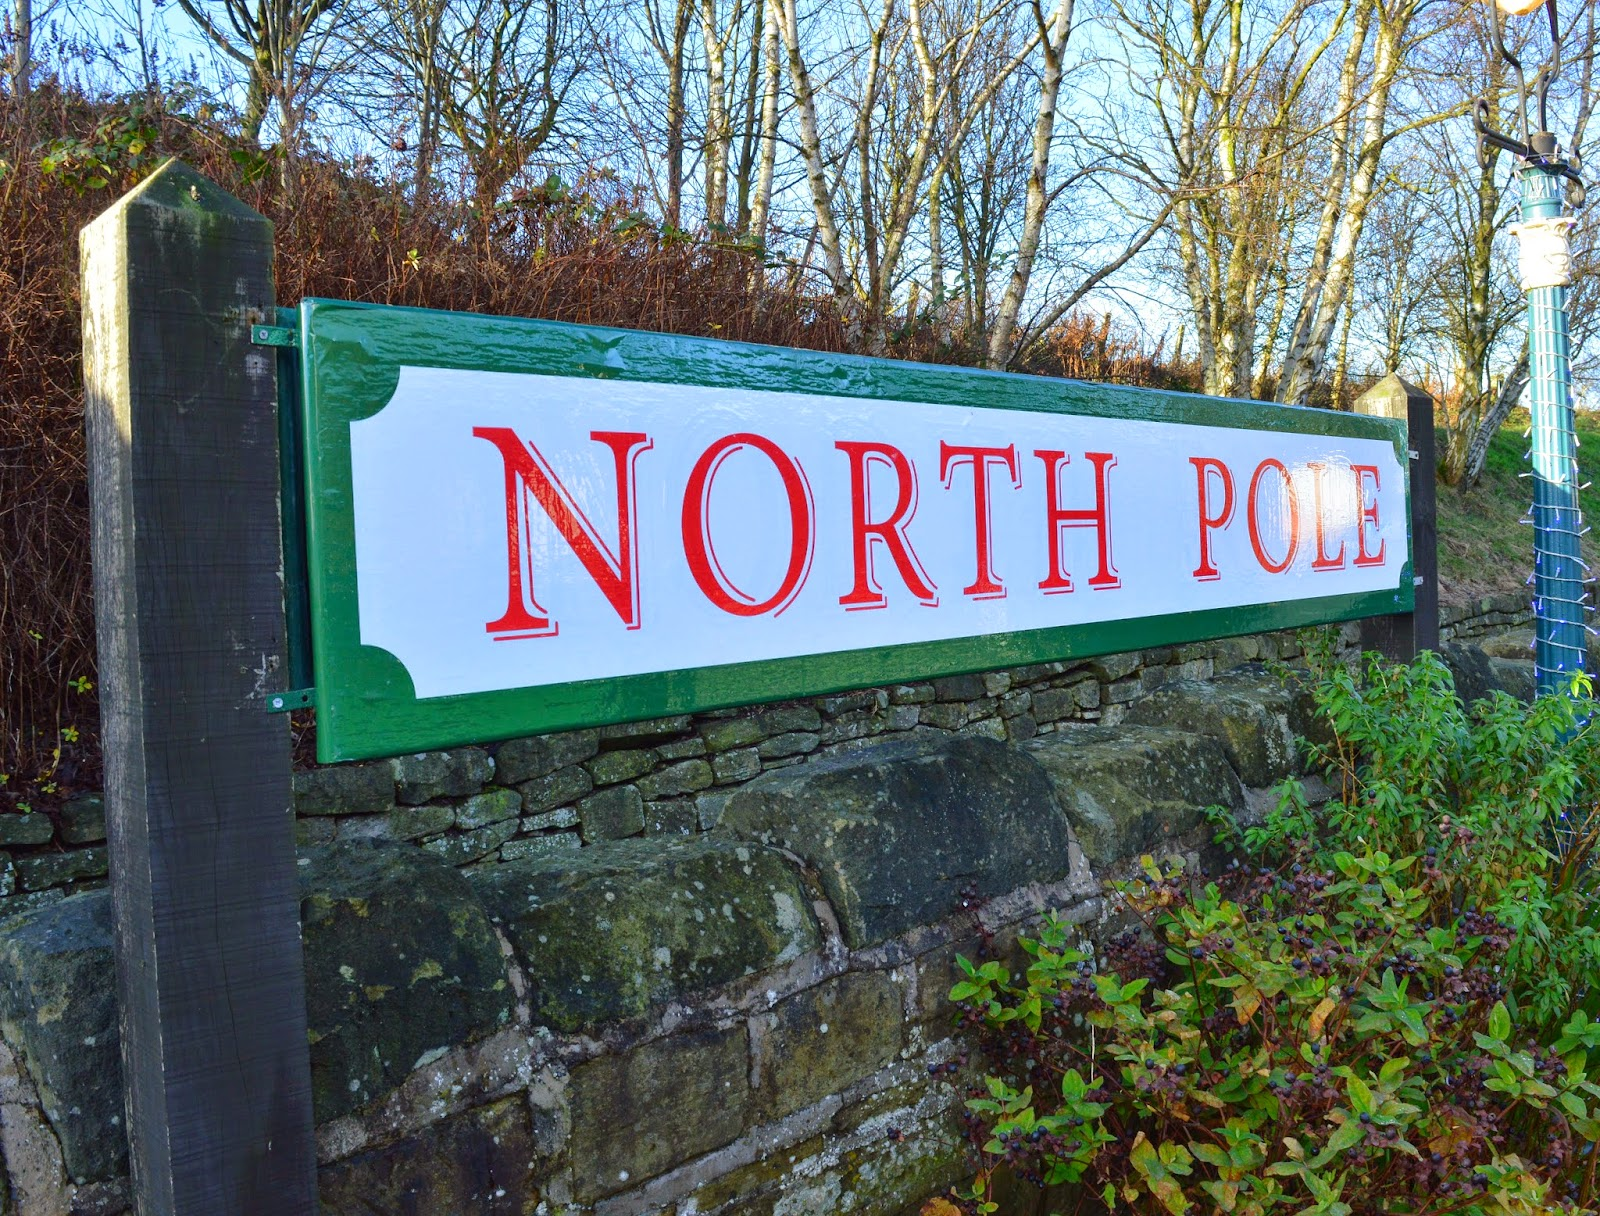 The Original North Pole Express | Tanfield Railway - A North East 'Santa Train' review  - North Pole